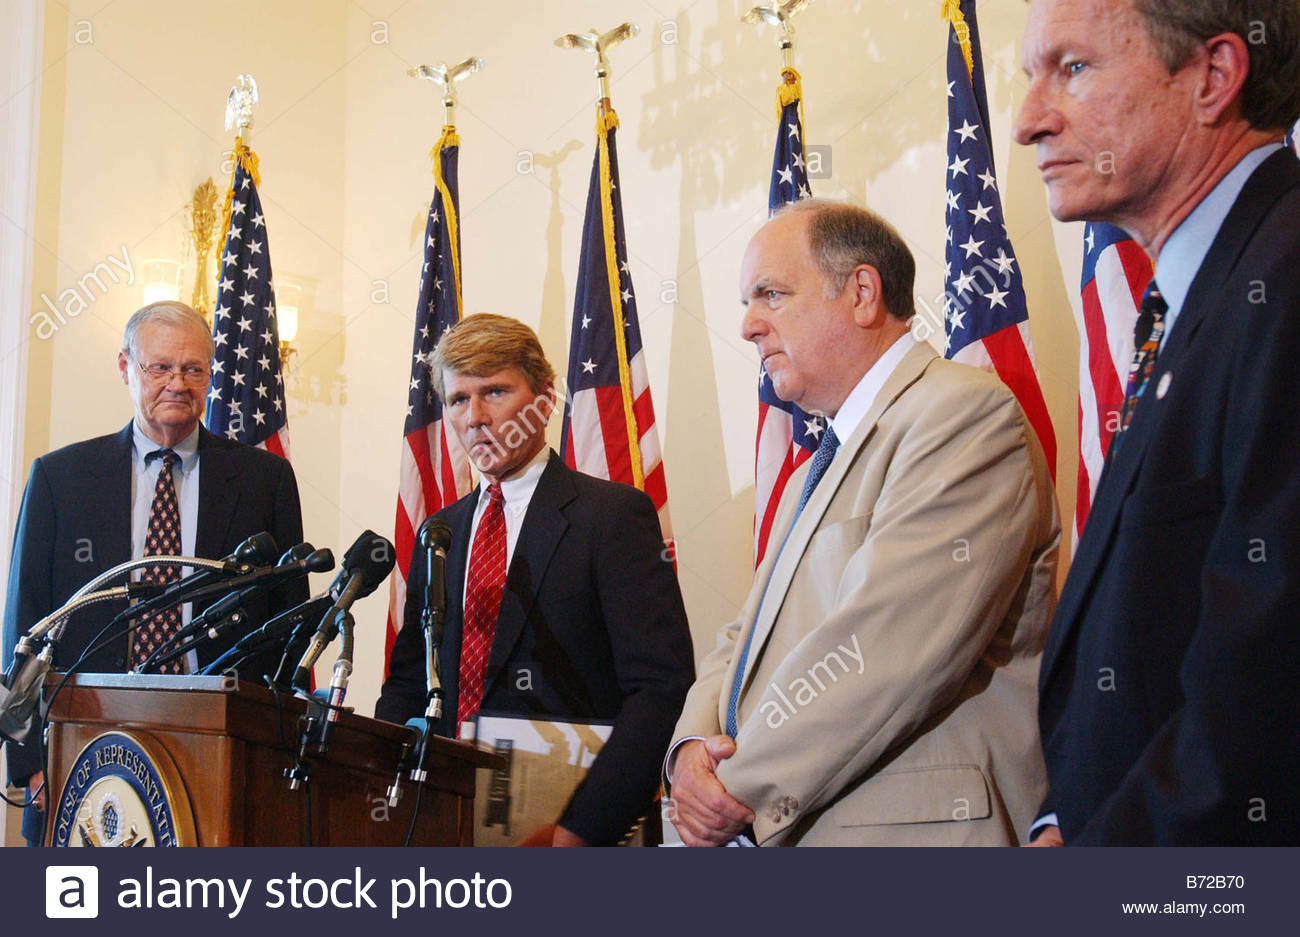 9 17 03 IRAQ SUPPLEMENTAL House Armed Services ranking Democrat Ike Skelton D Mo Rep Gene Taylor D Miss Assistant - Stock Image